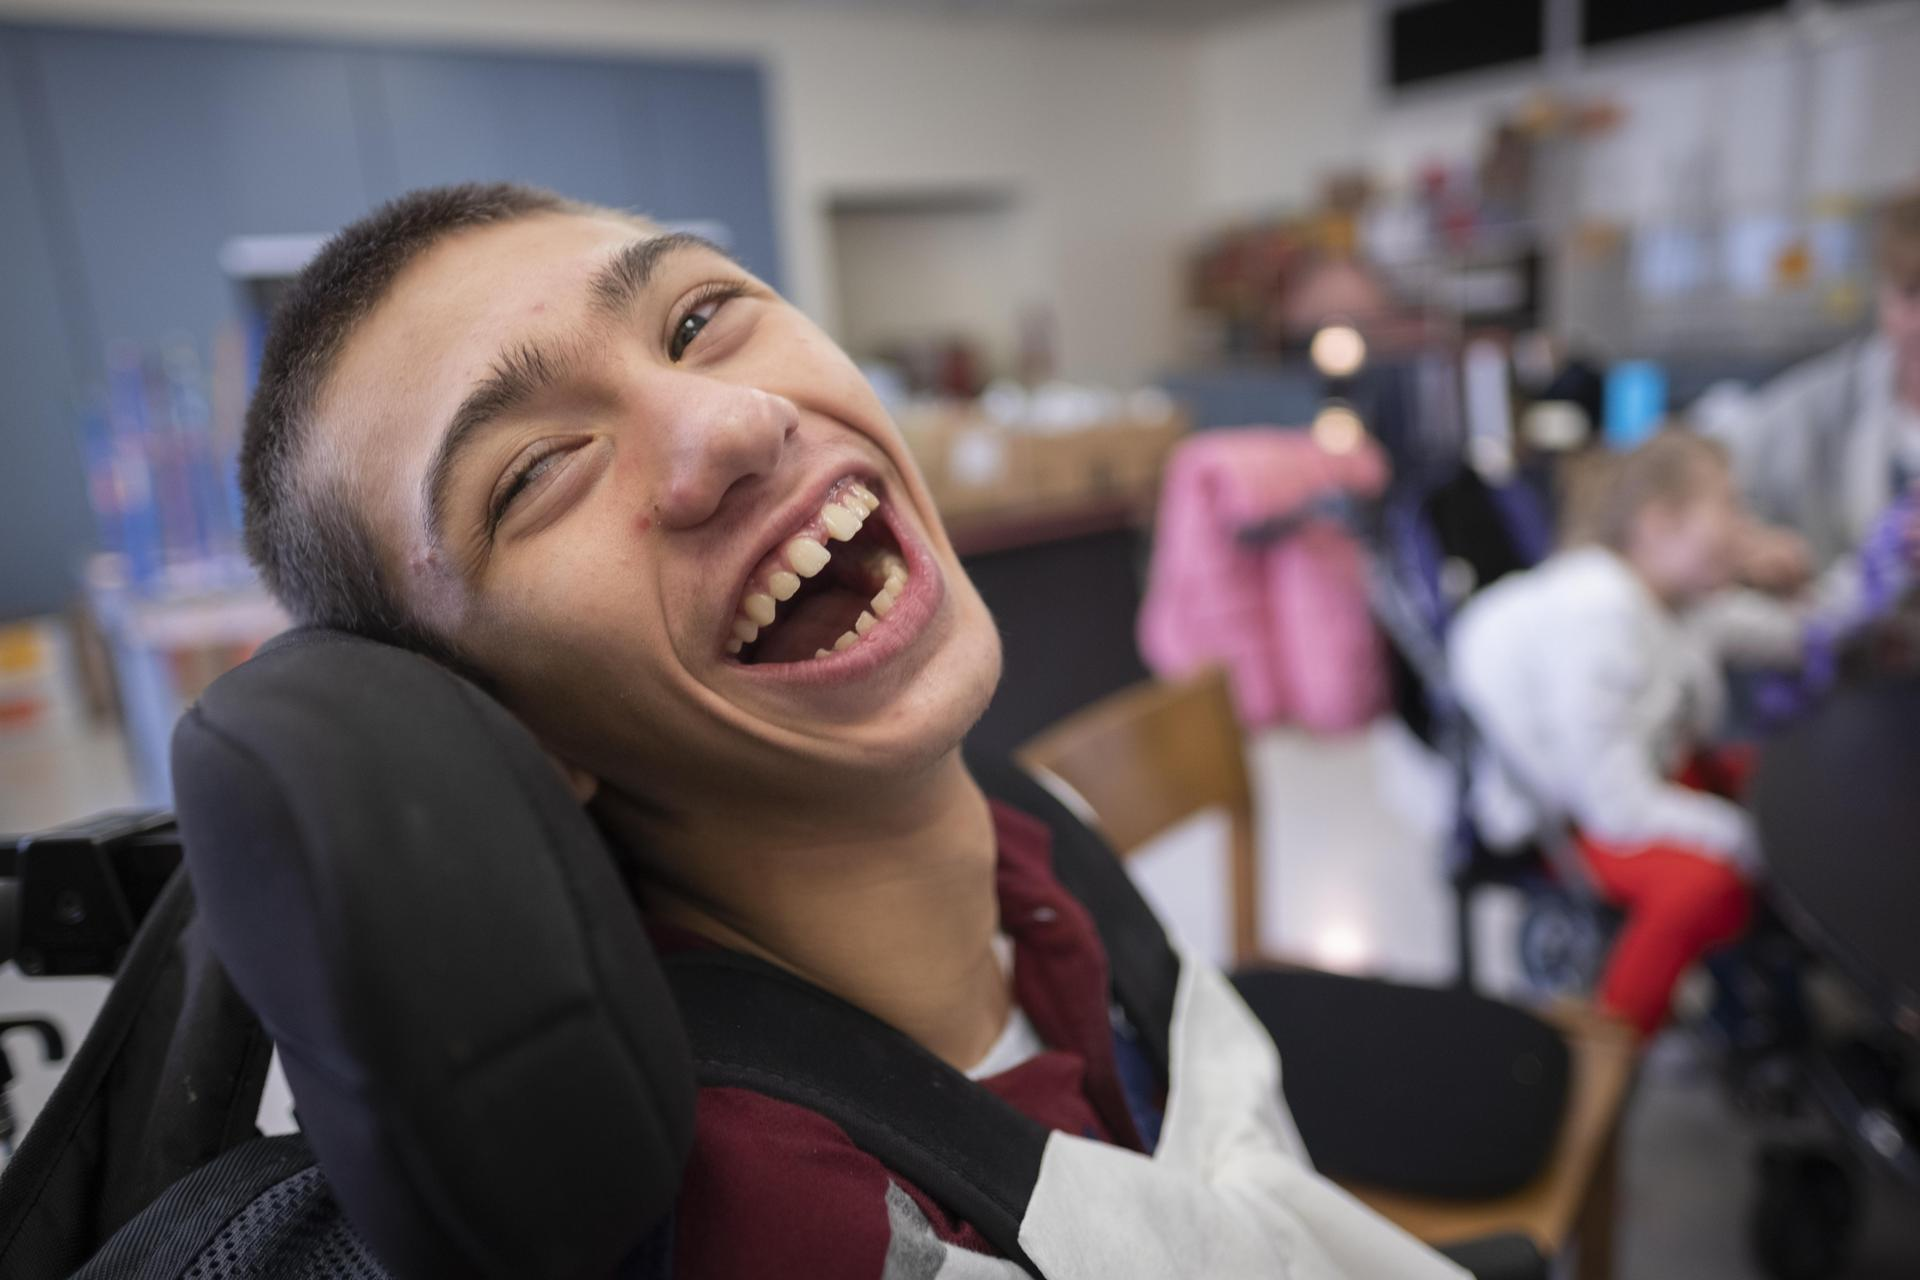 student smiling in class